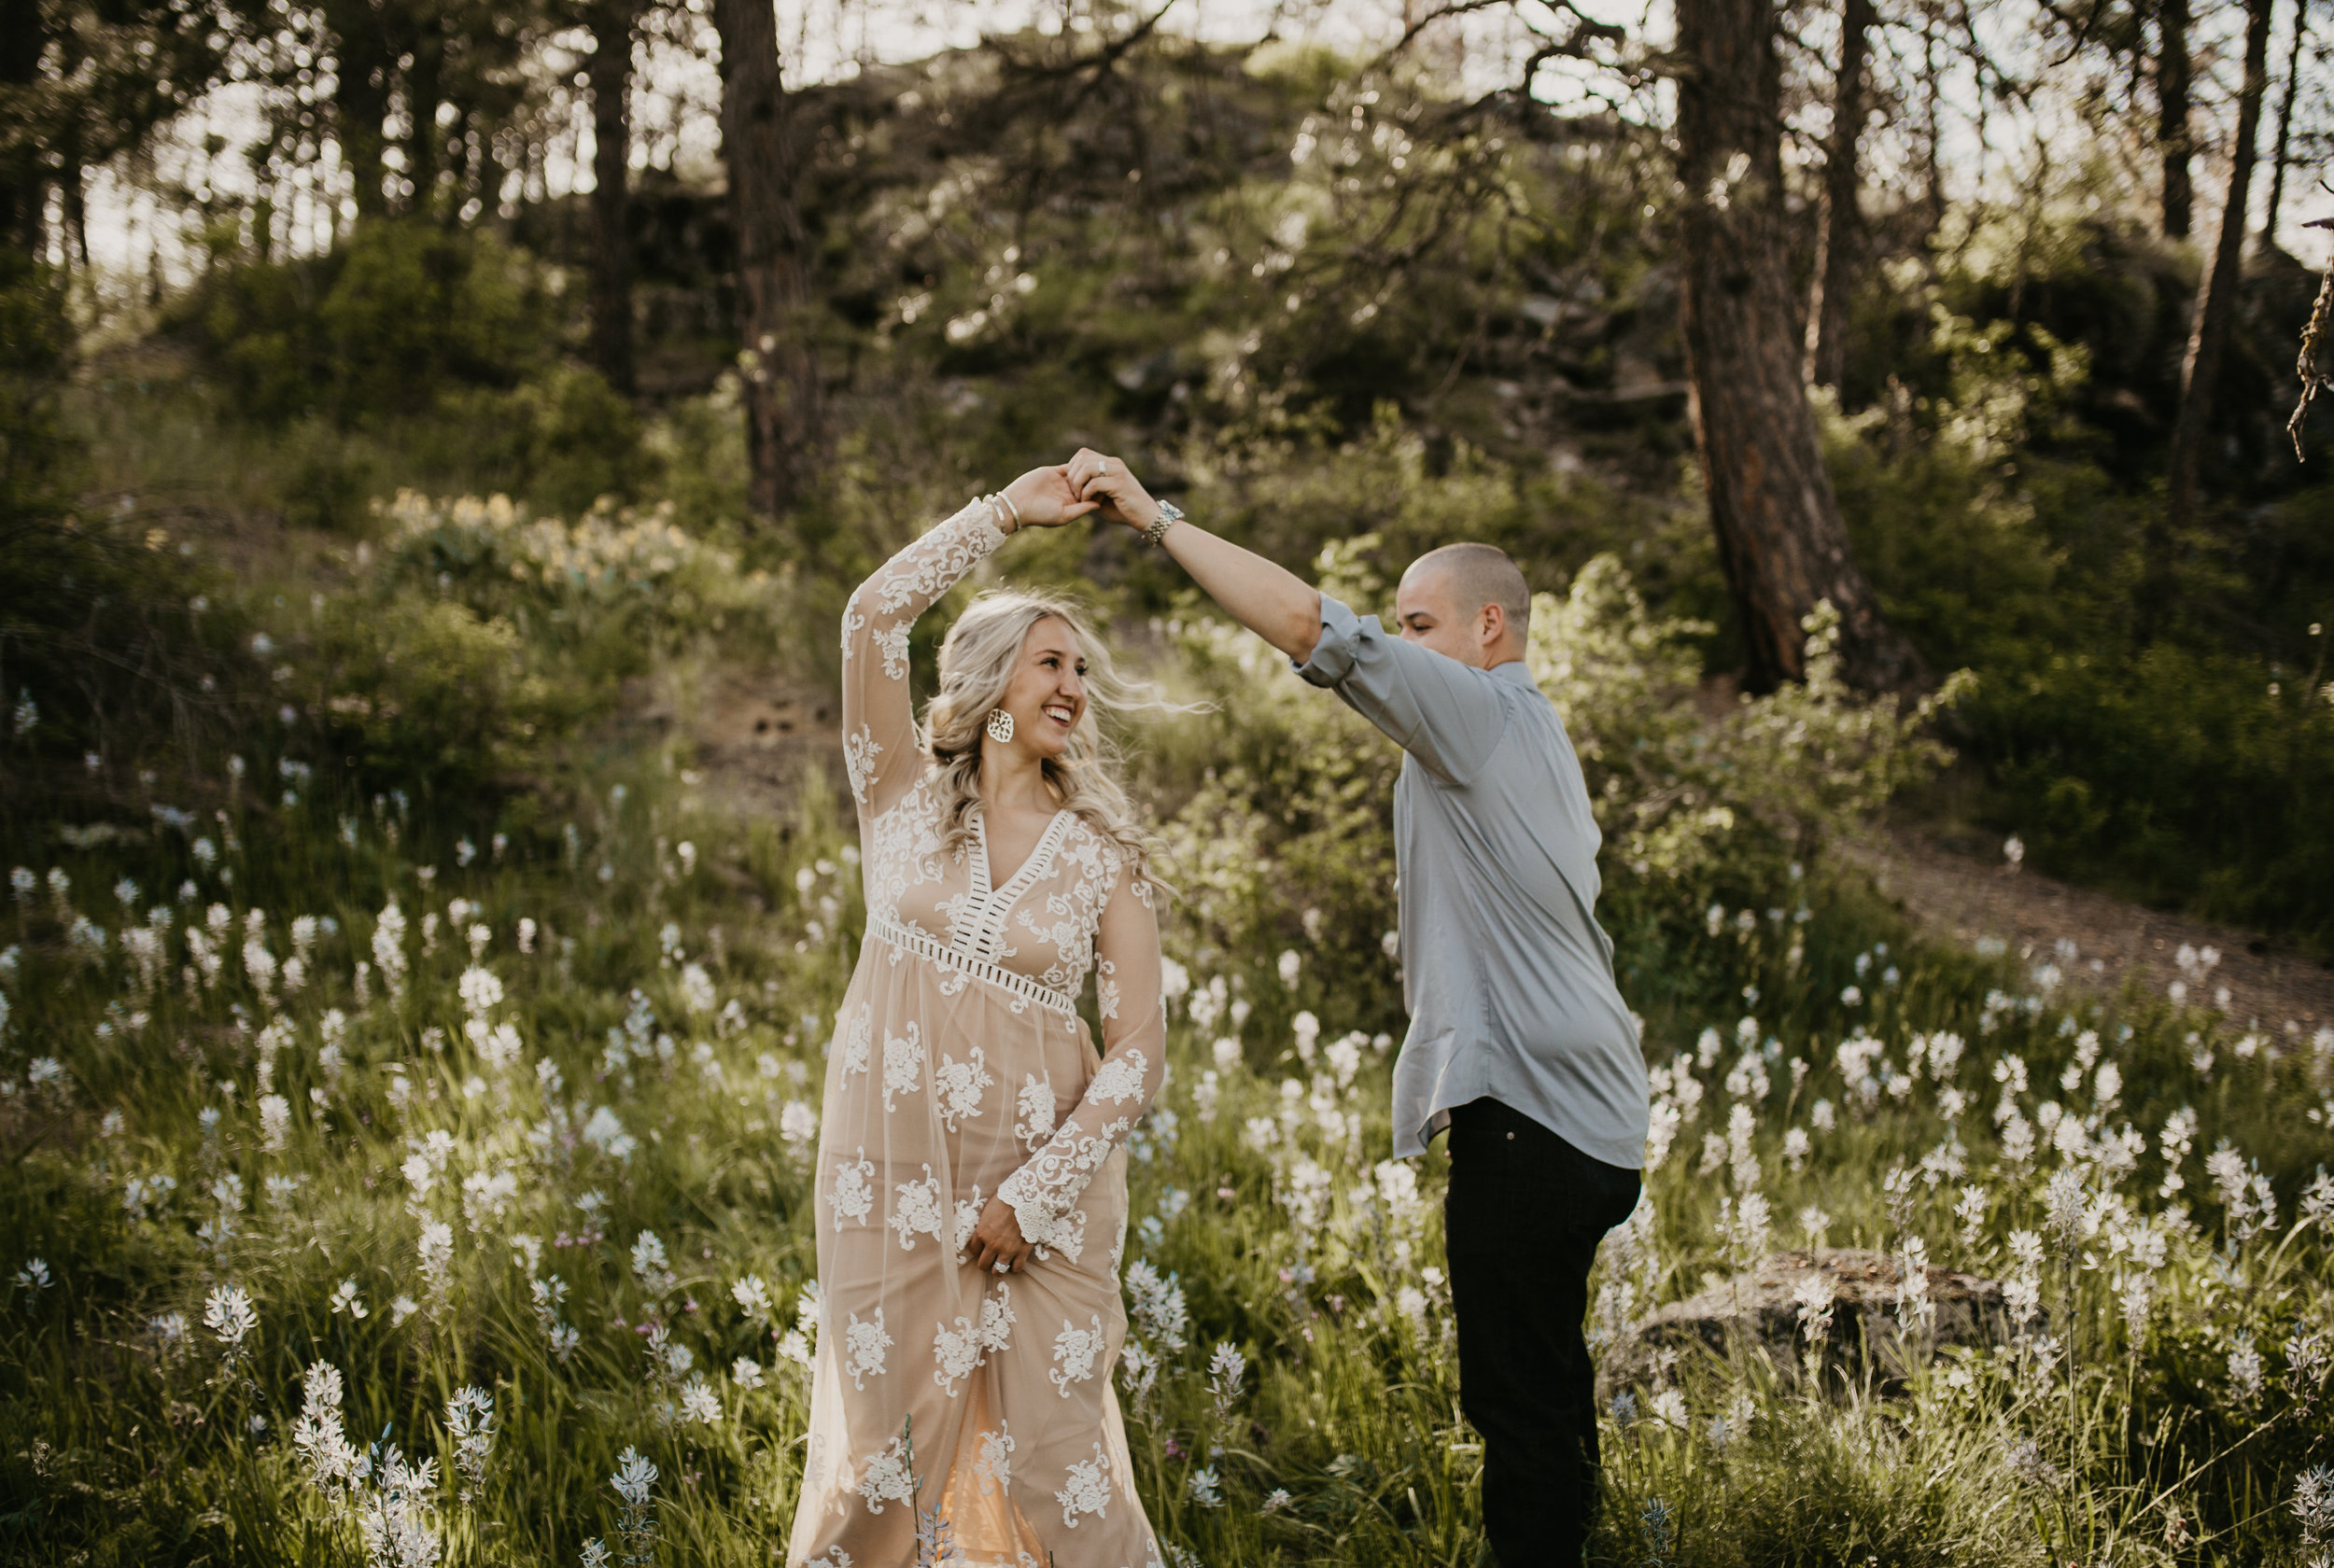 Couple dancing during engagement session in a field of wildflowers